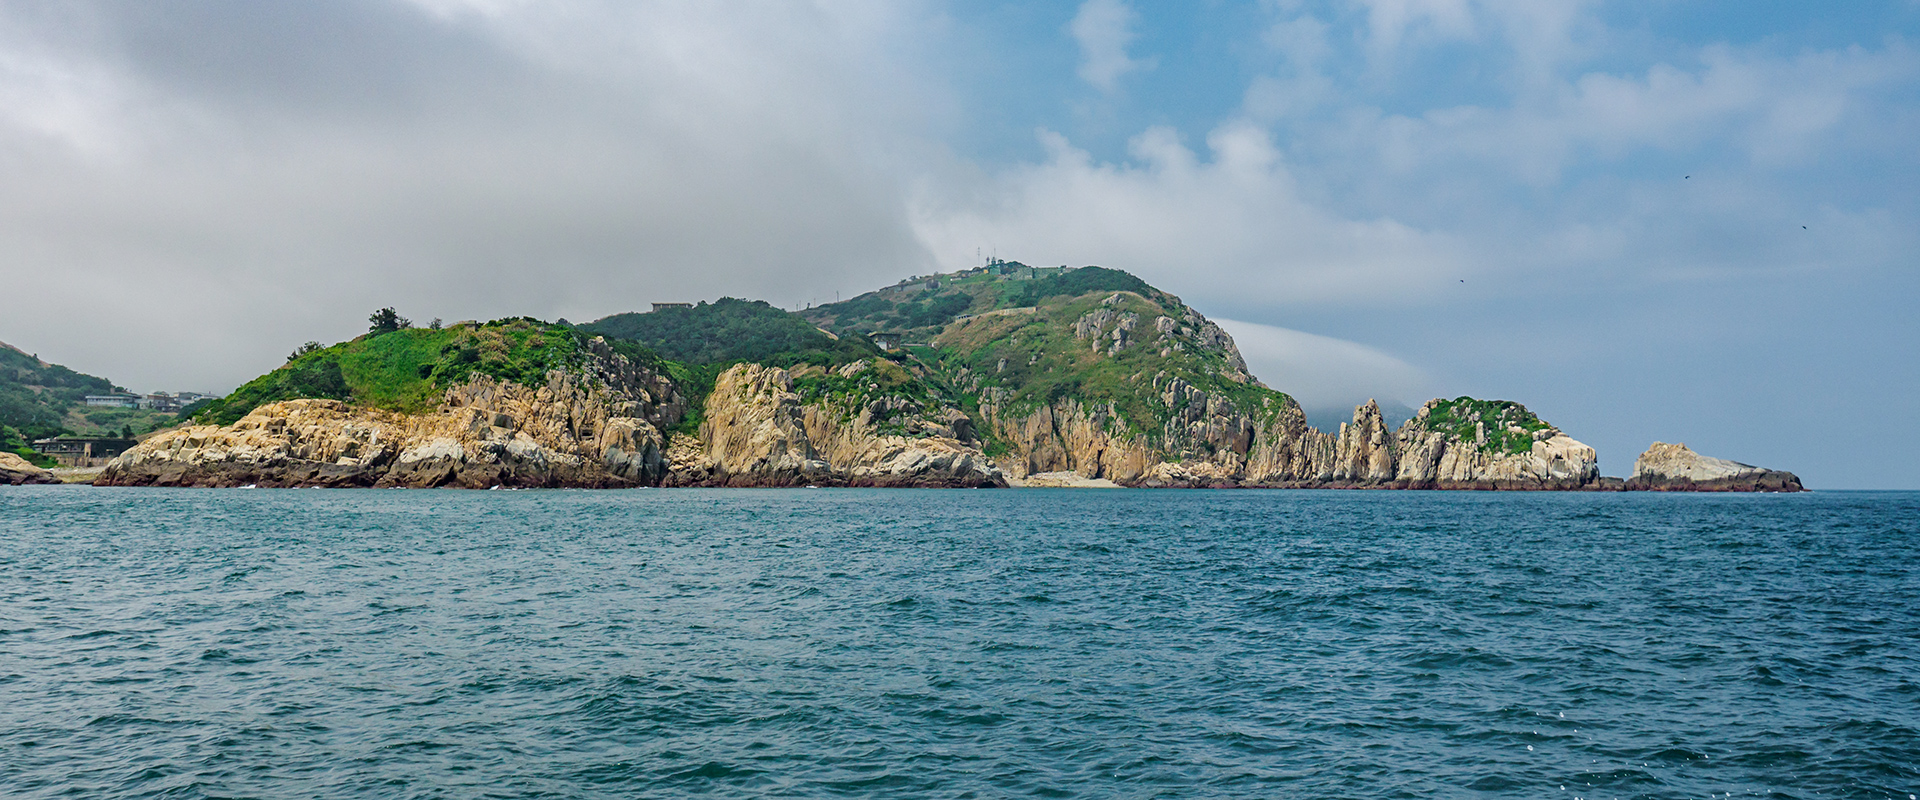 Looking at Dongyin from the sea